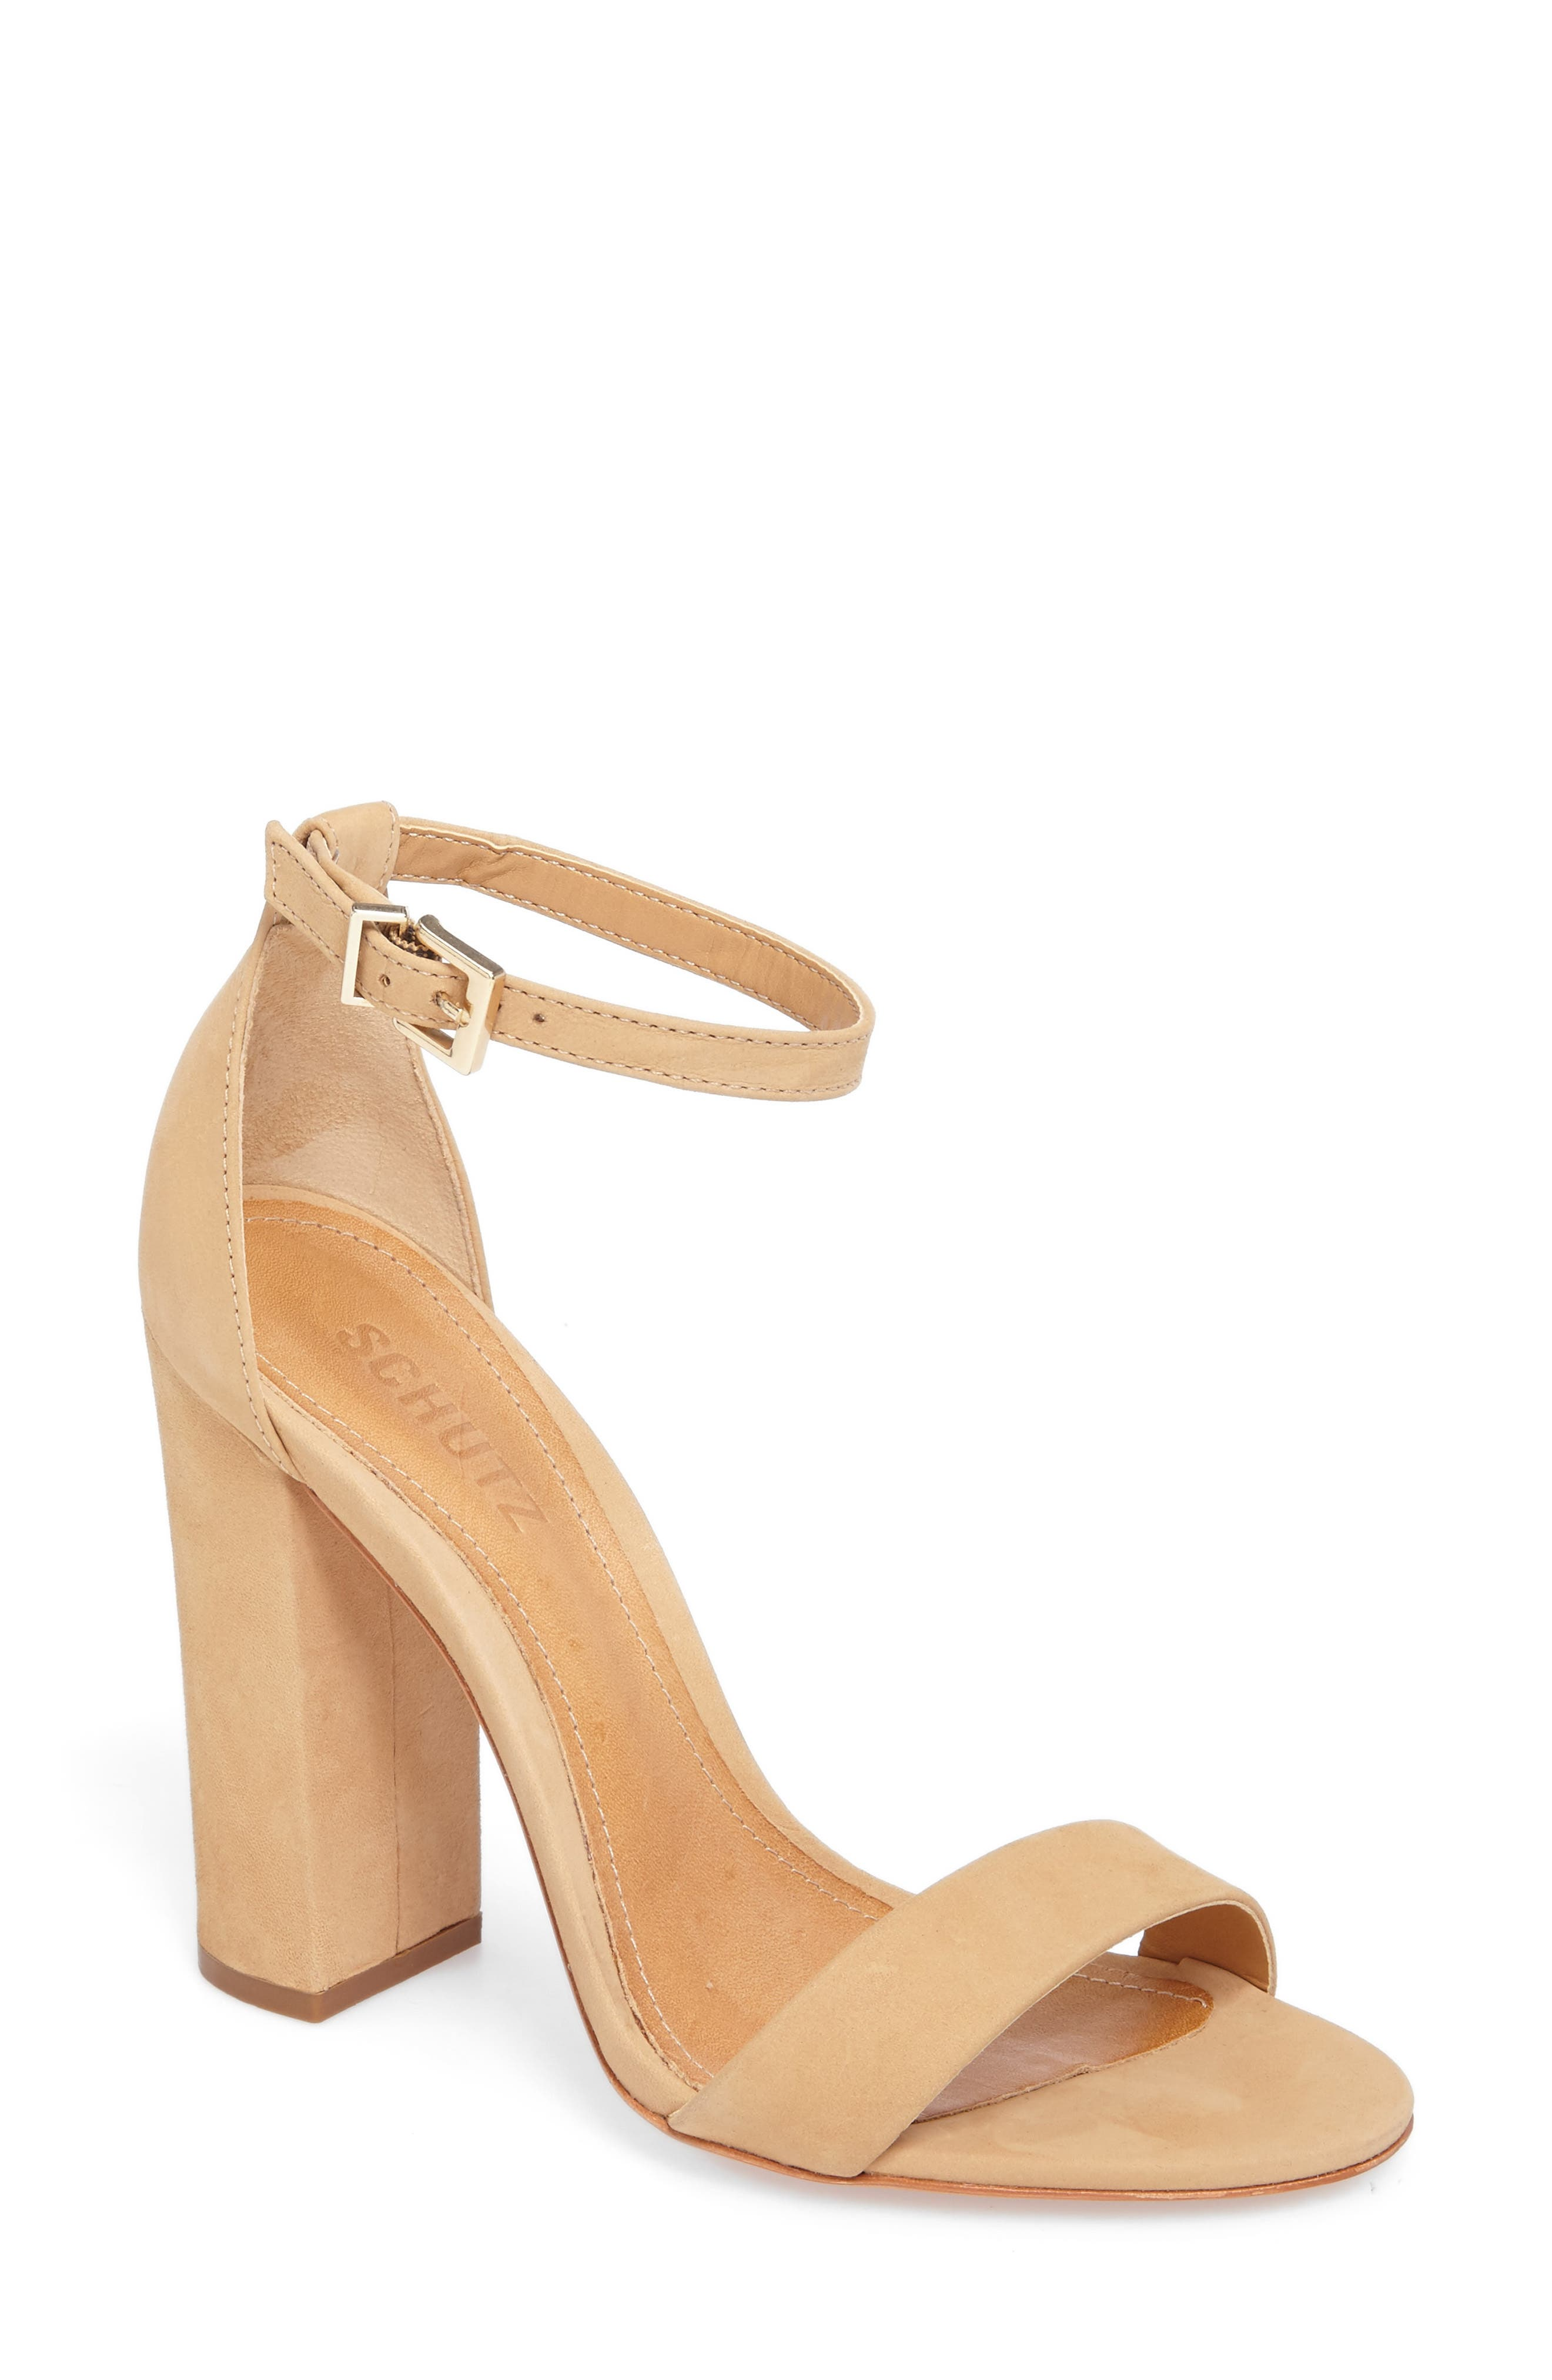 1109e3b6a Women s Schutz Shoes